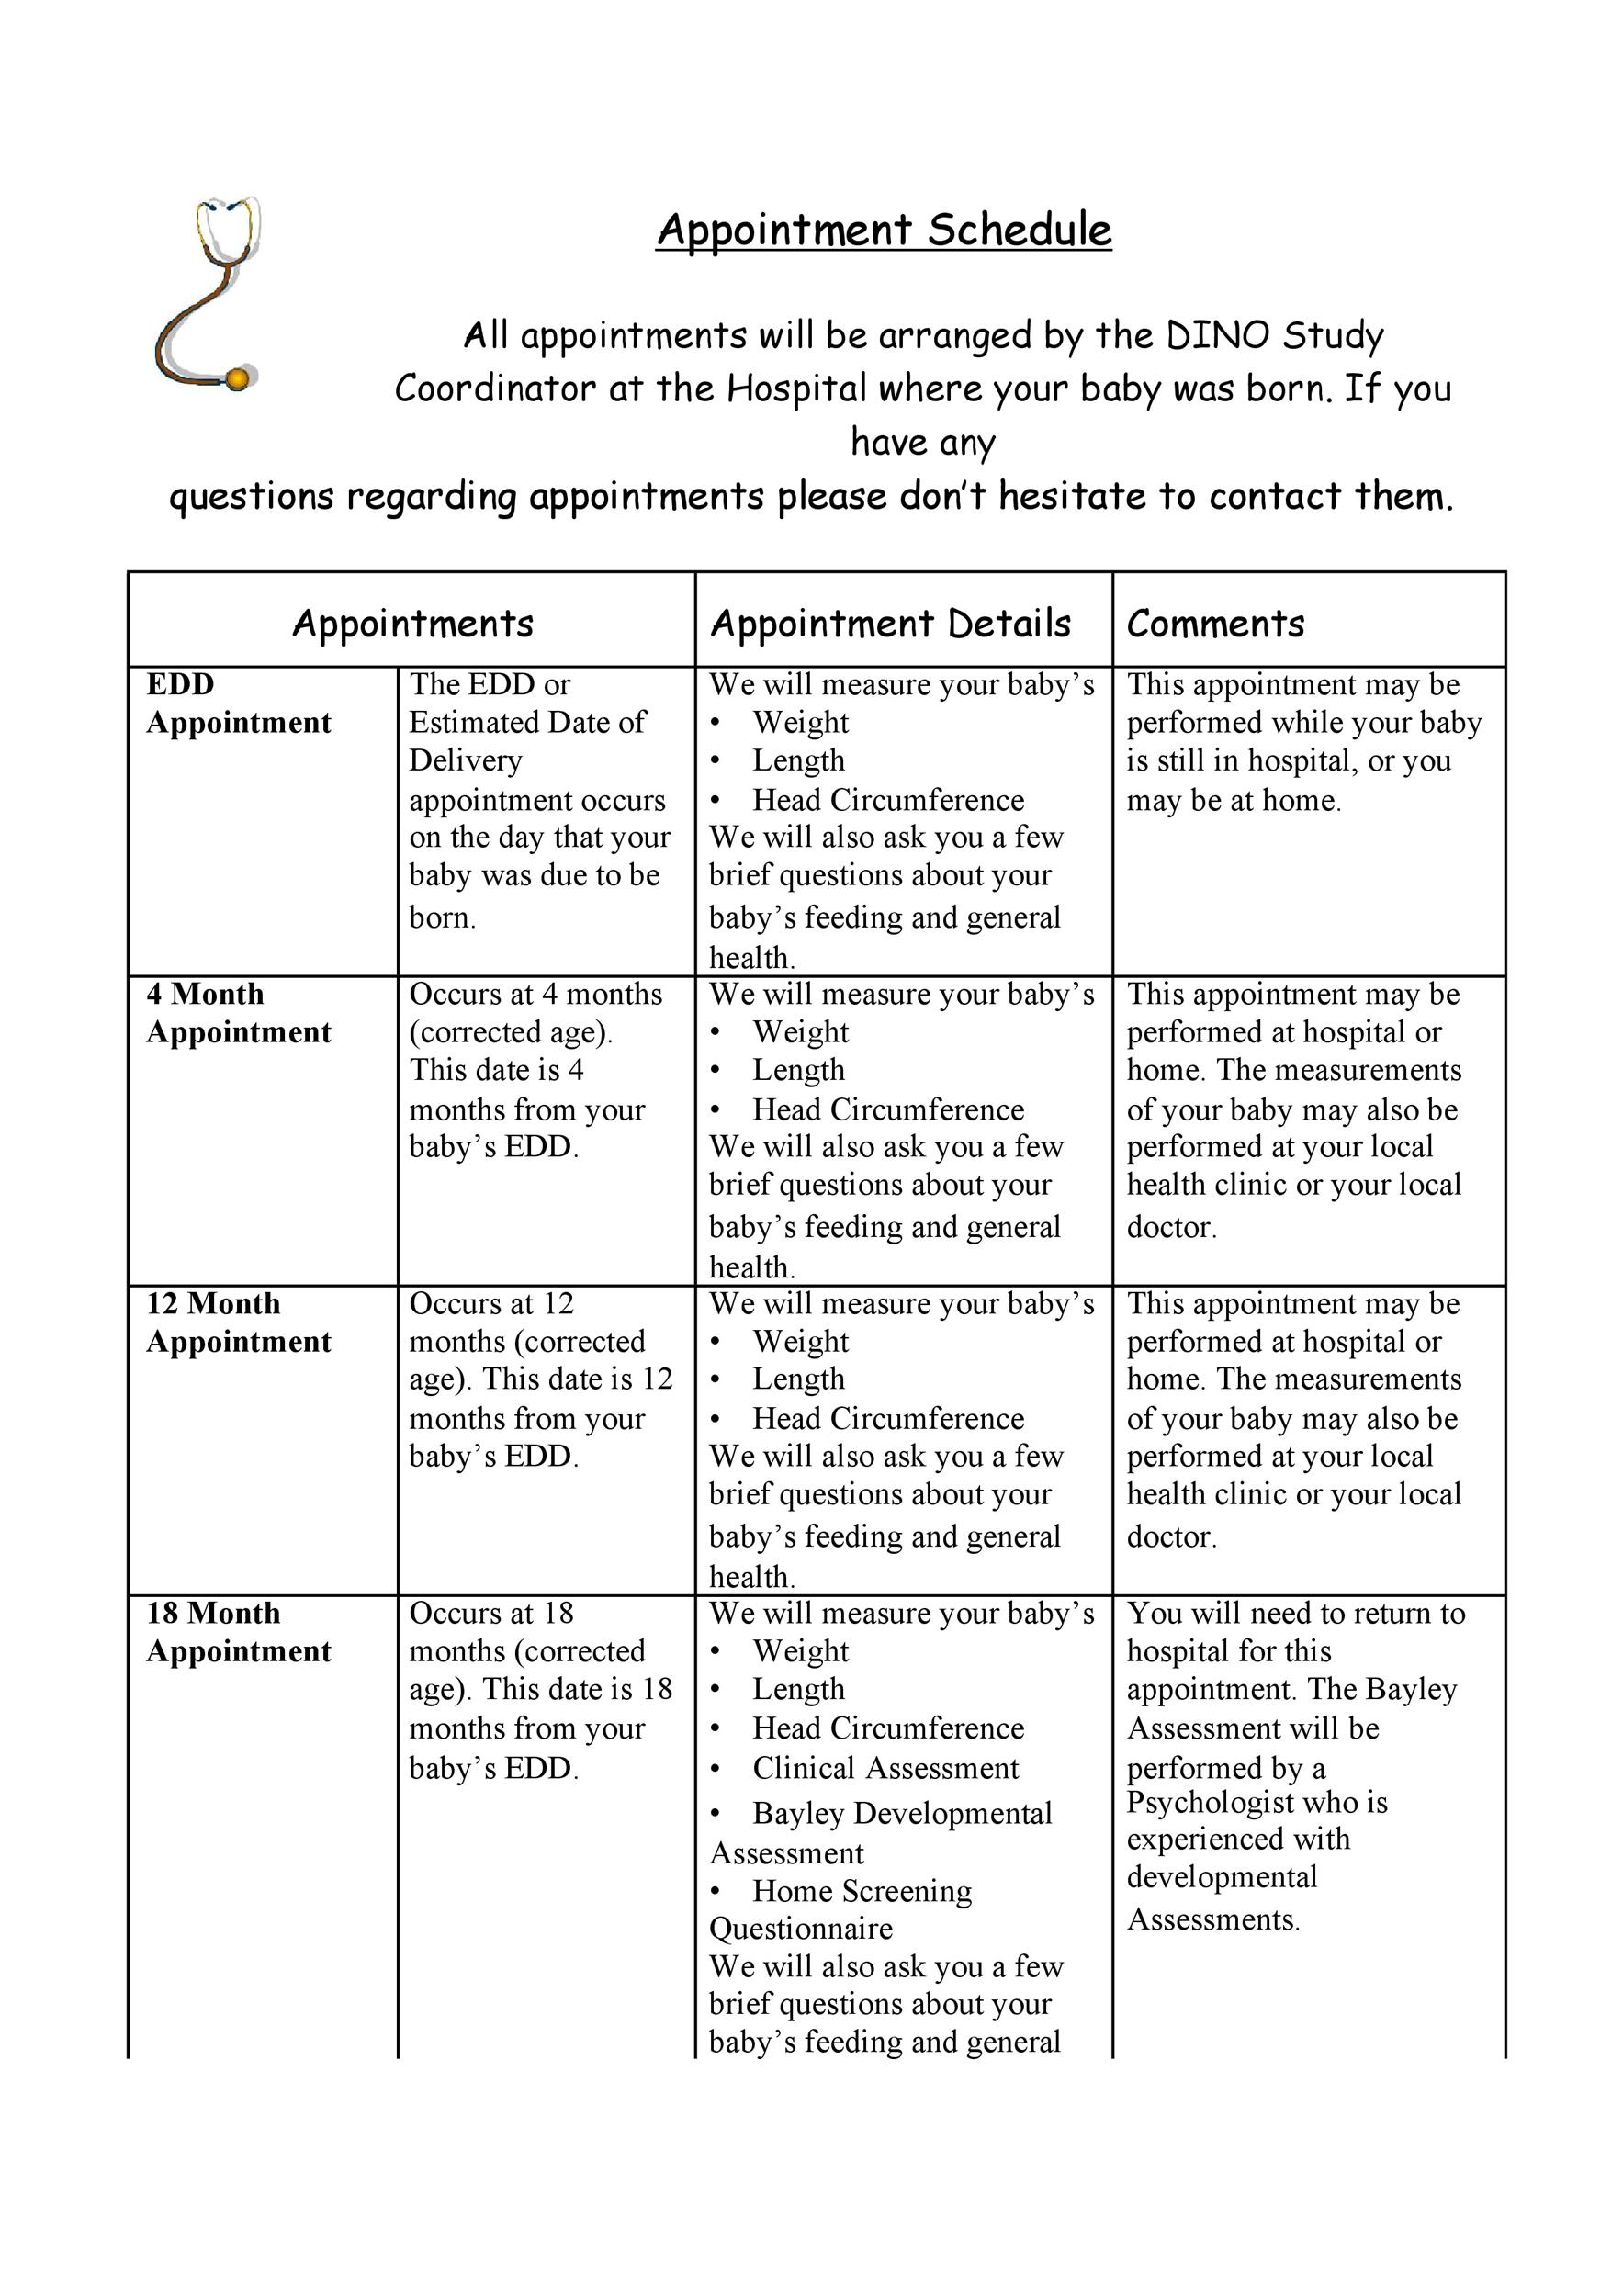 printable appointment schedule template